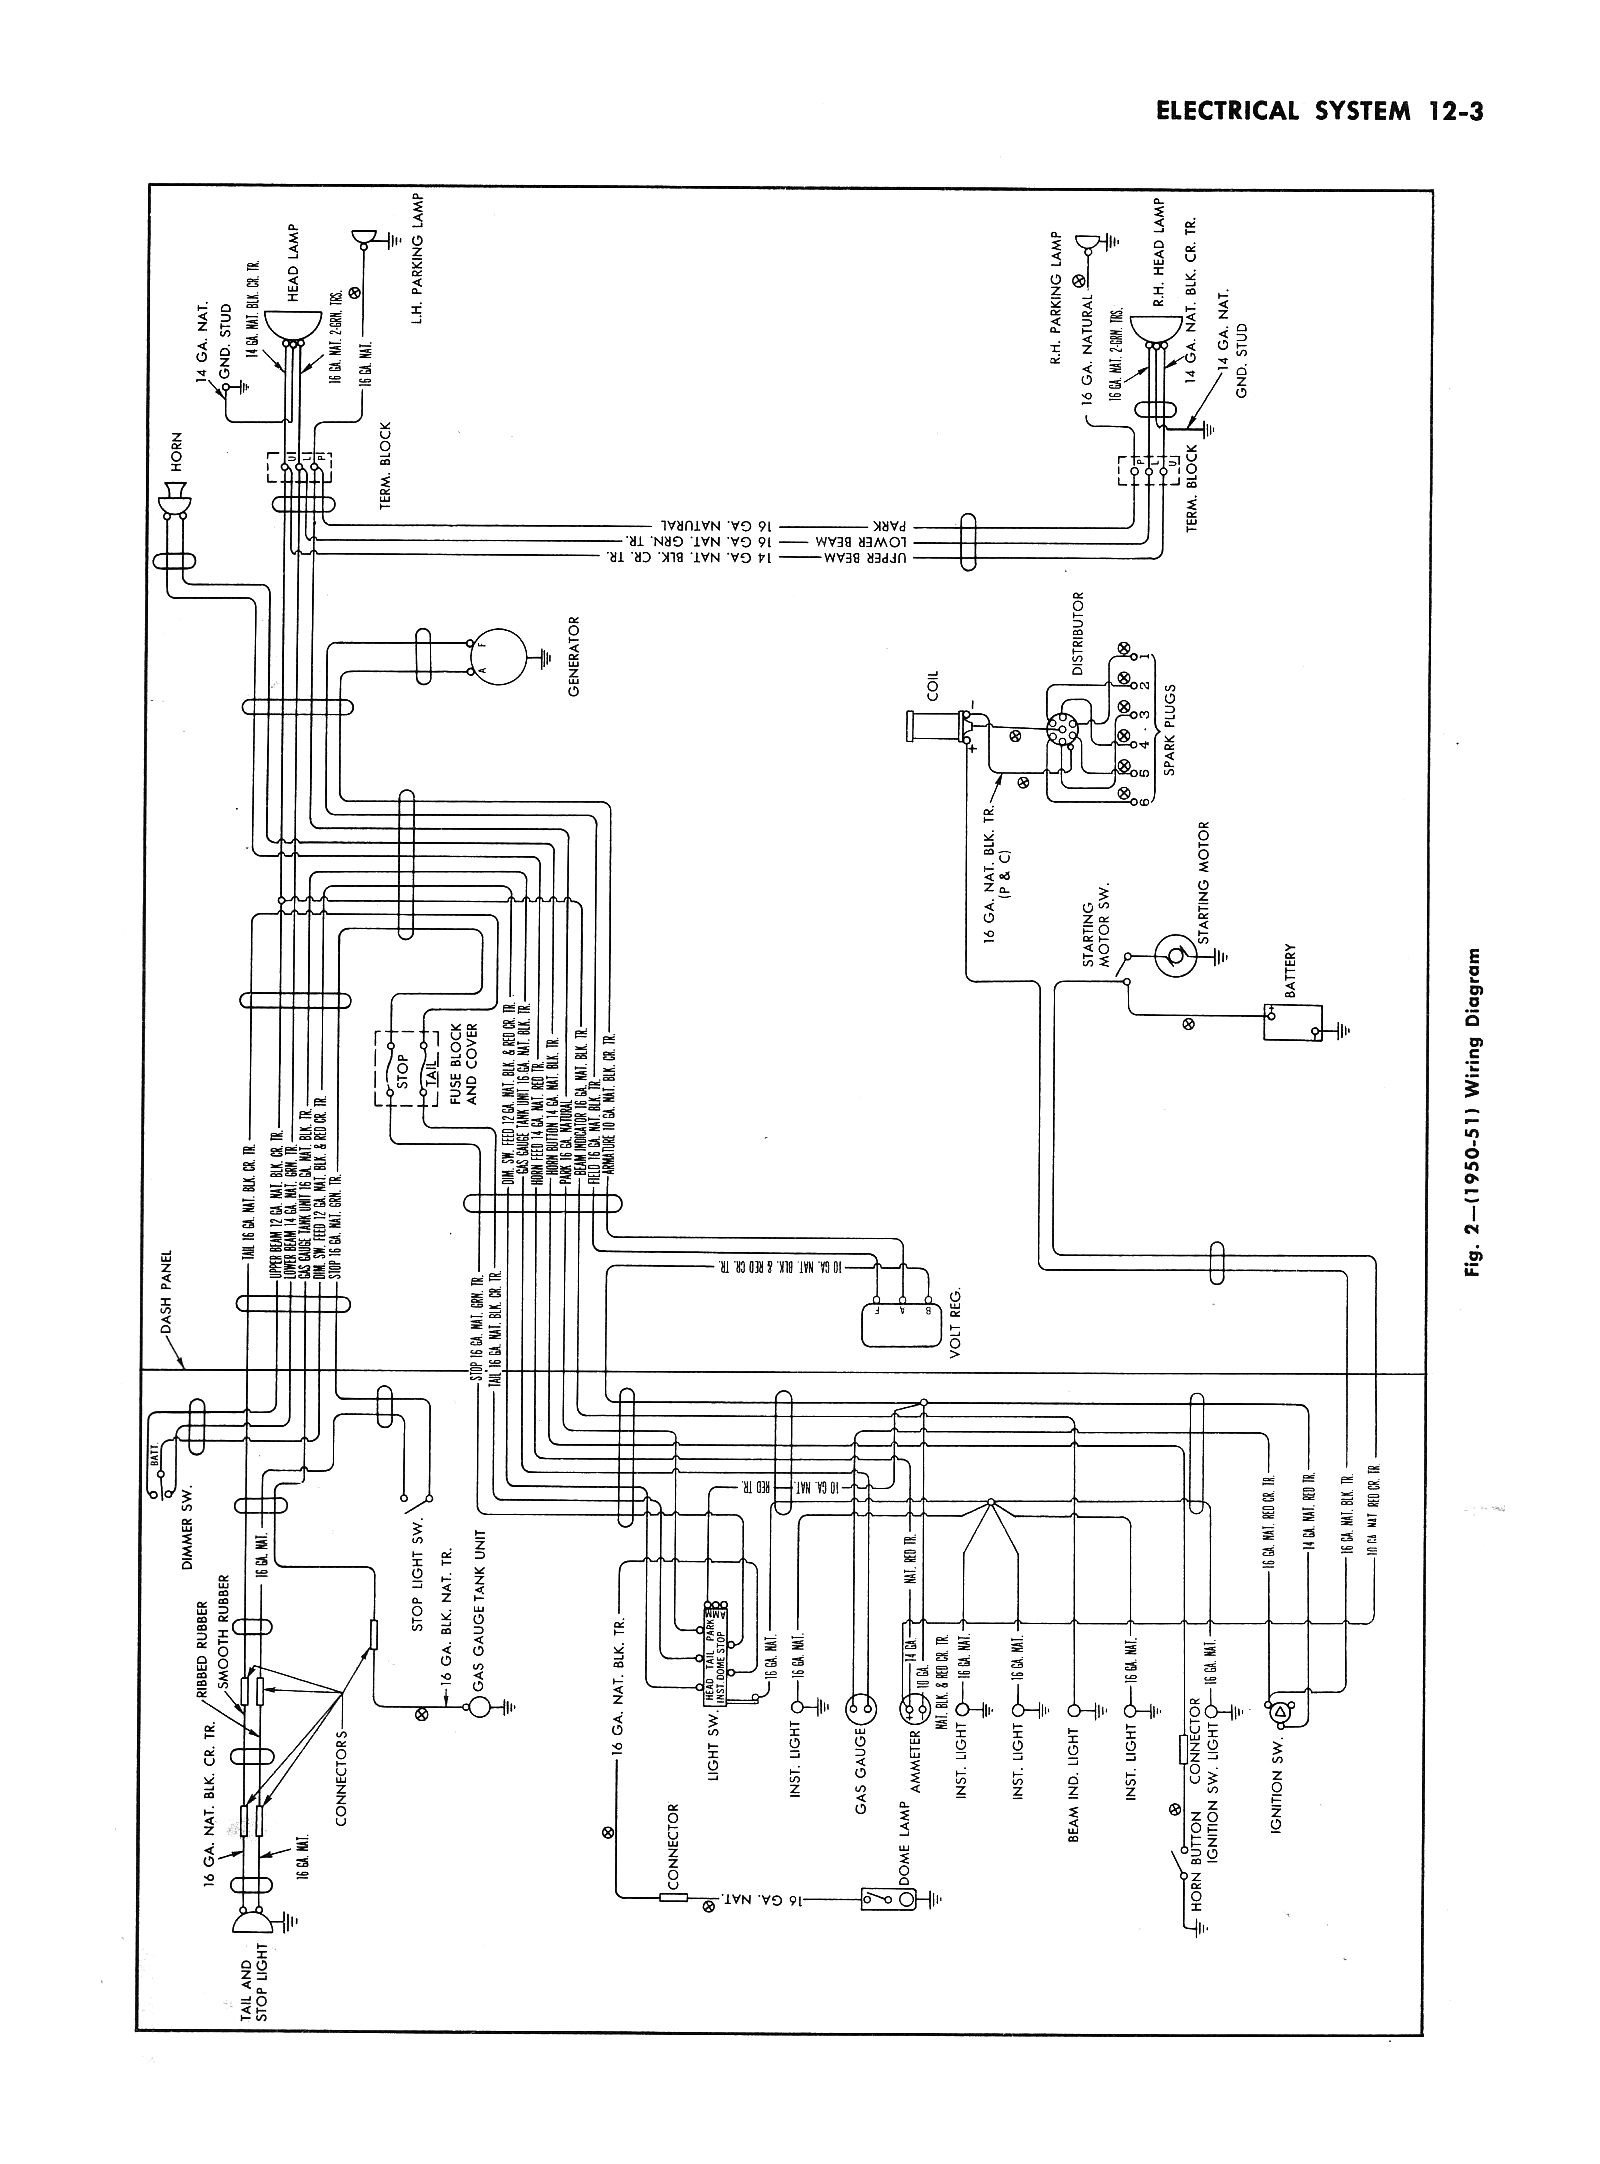 chevrolet truck wiring data wiring diagram